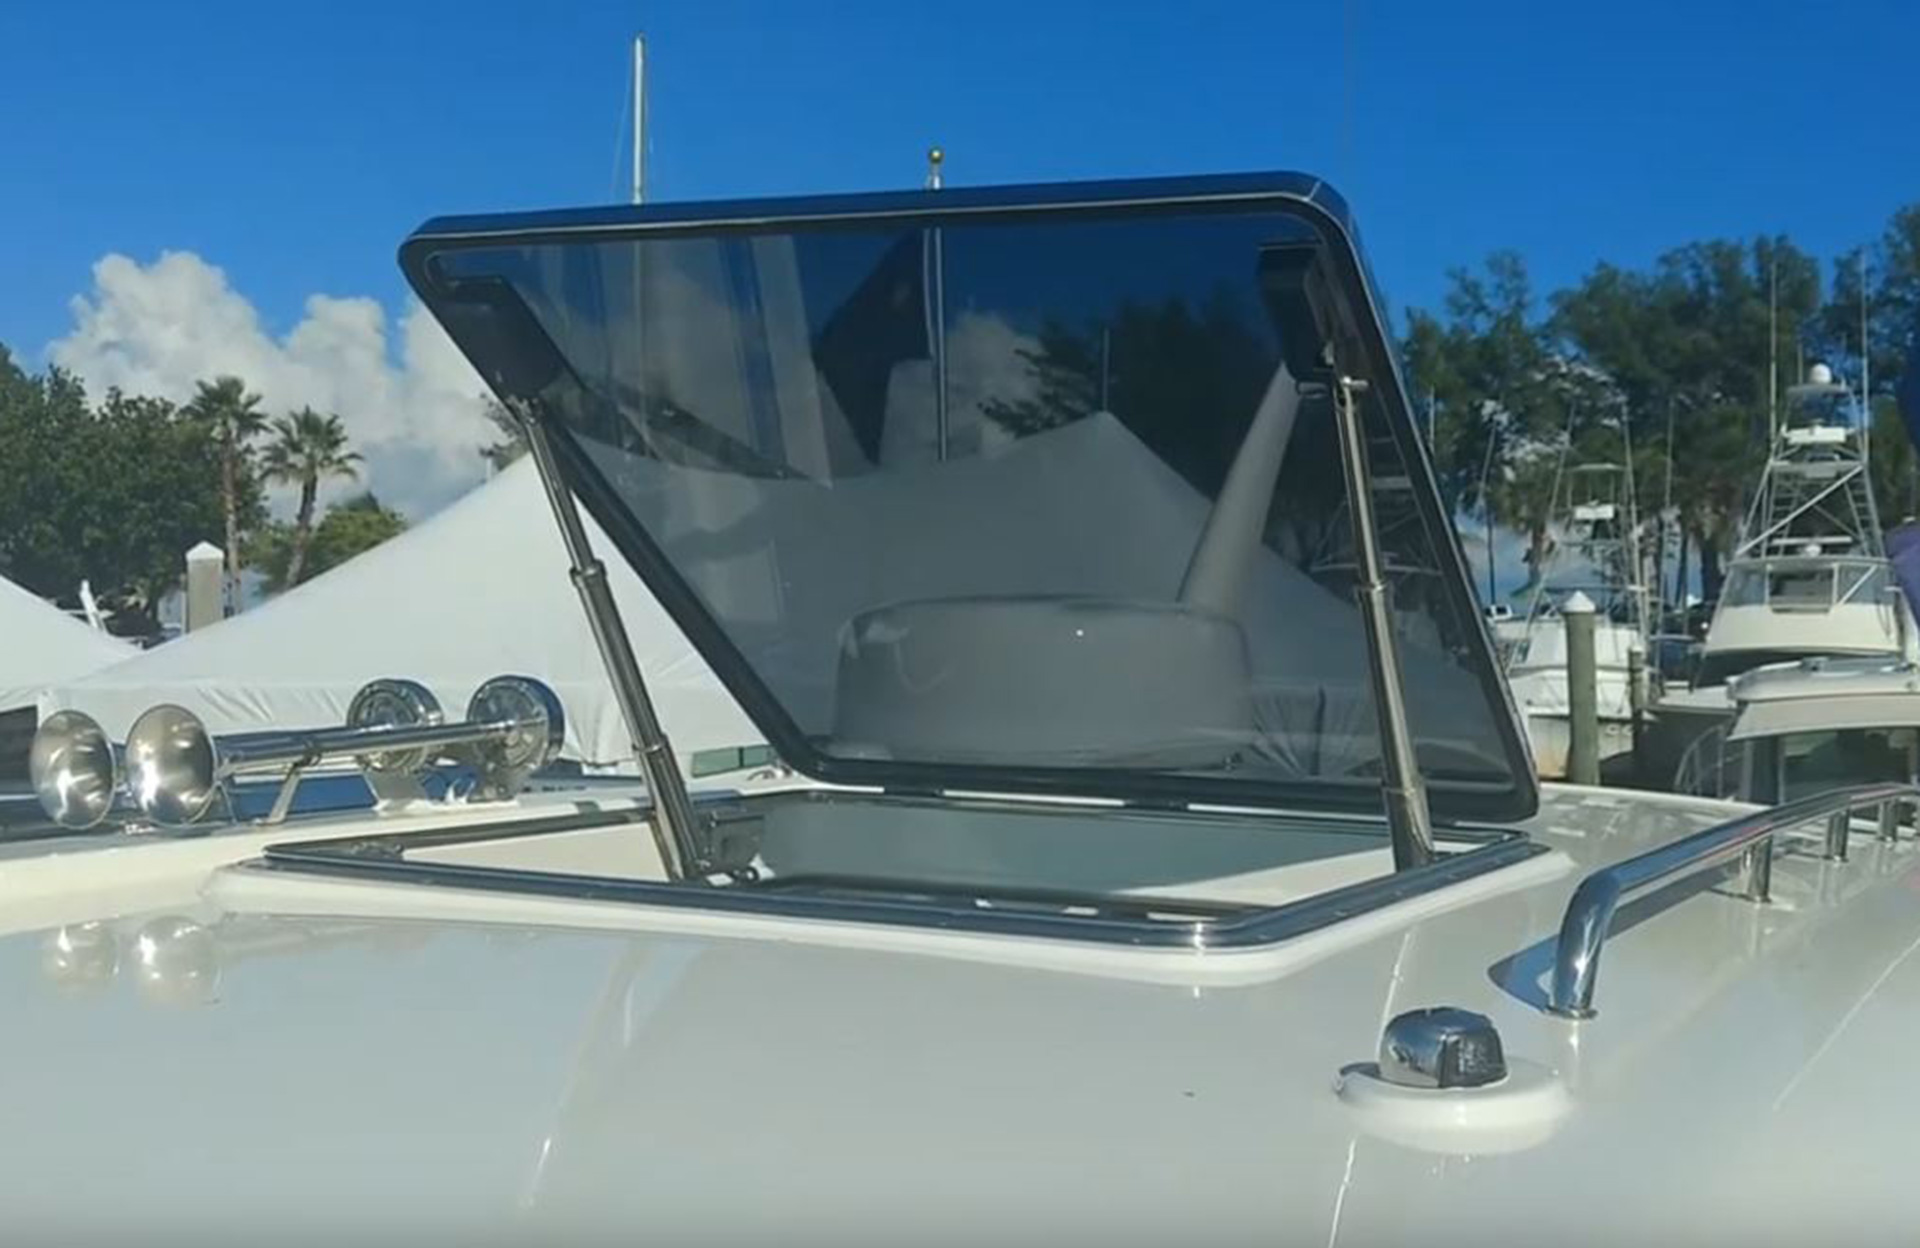 DTS Marine Powered Self Dogging Hatch Open Video Grab